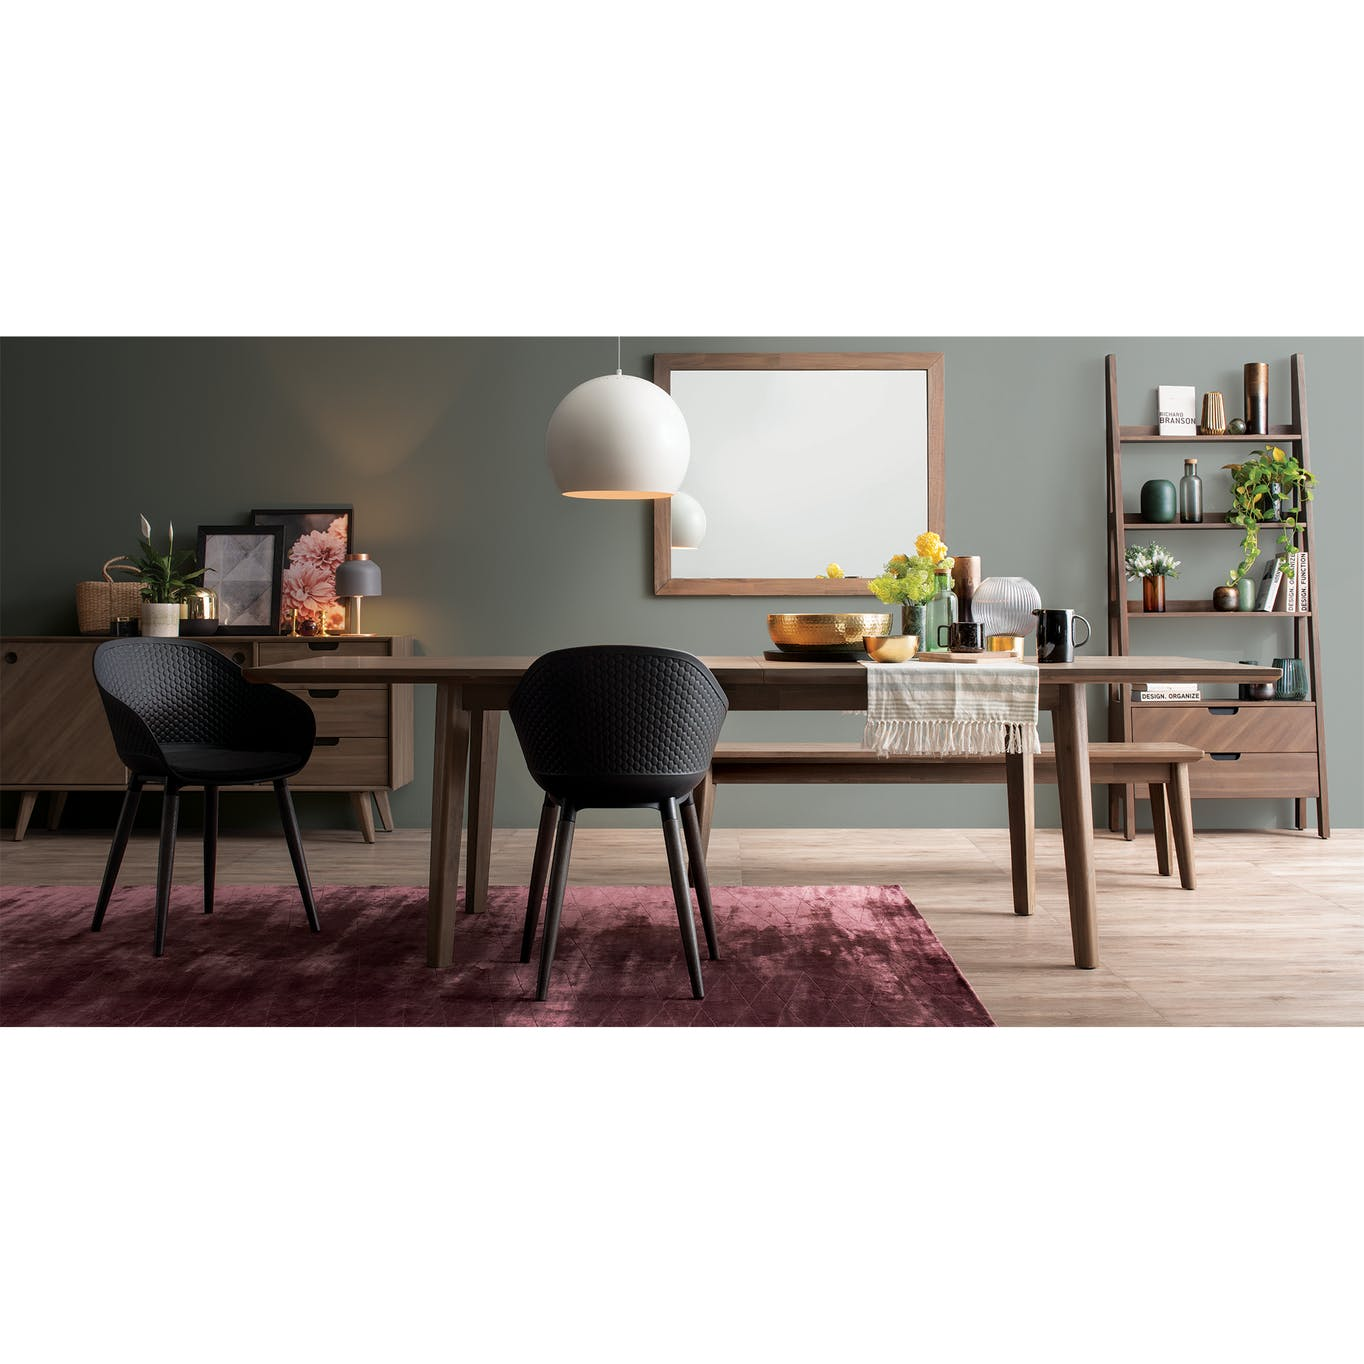 Extendable wooden dining table with tablecloth on it